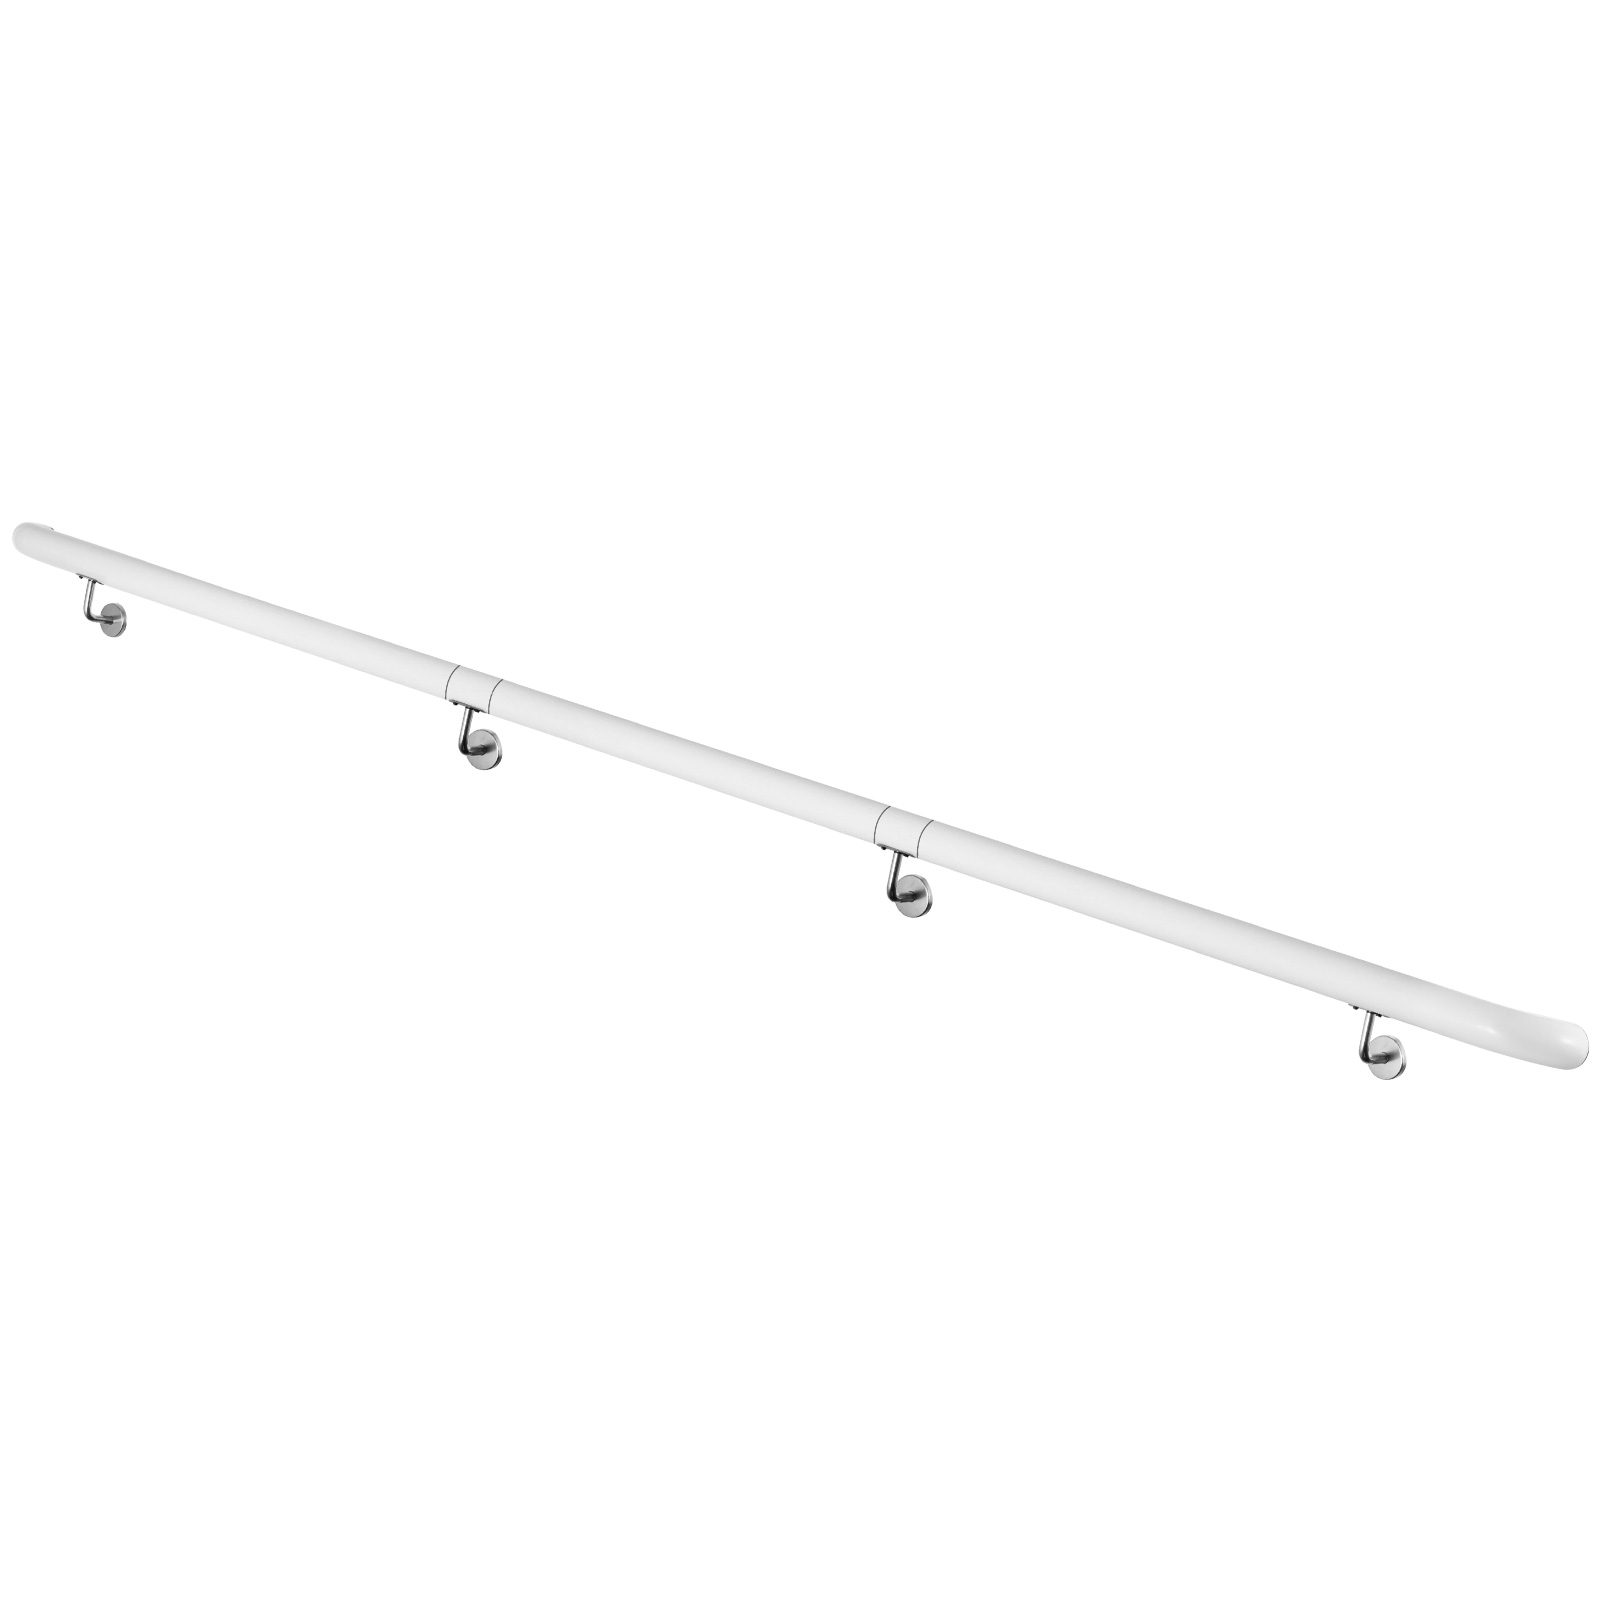 Stair-Handrail-Stair-Rail-Aluminum-Indoor-Handrail-for-Stairs-3-16-039-White-200lbs thumbnail 119